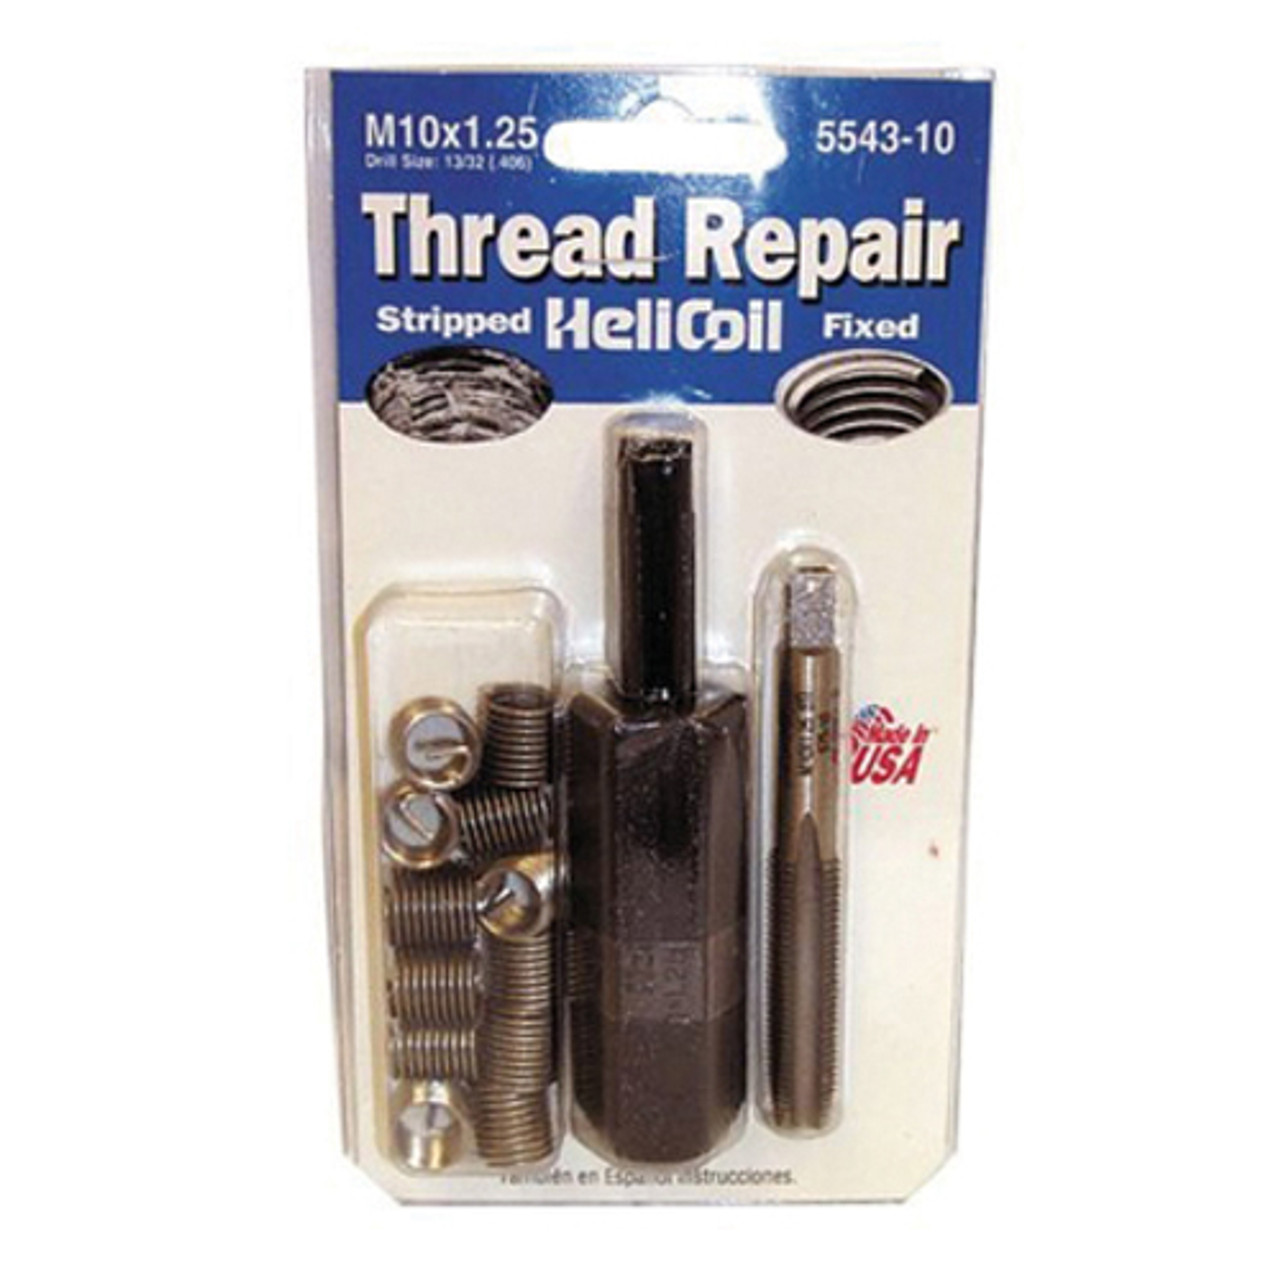 HeliCoil 5546-8 Thread Repair M8 x 1.25 12 Insert /& Tool Complete Kit